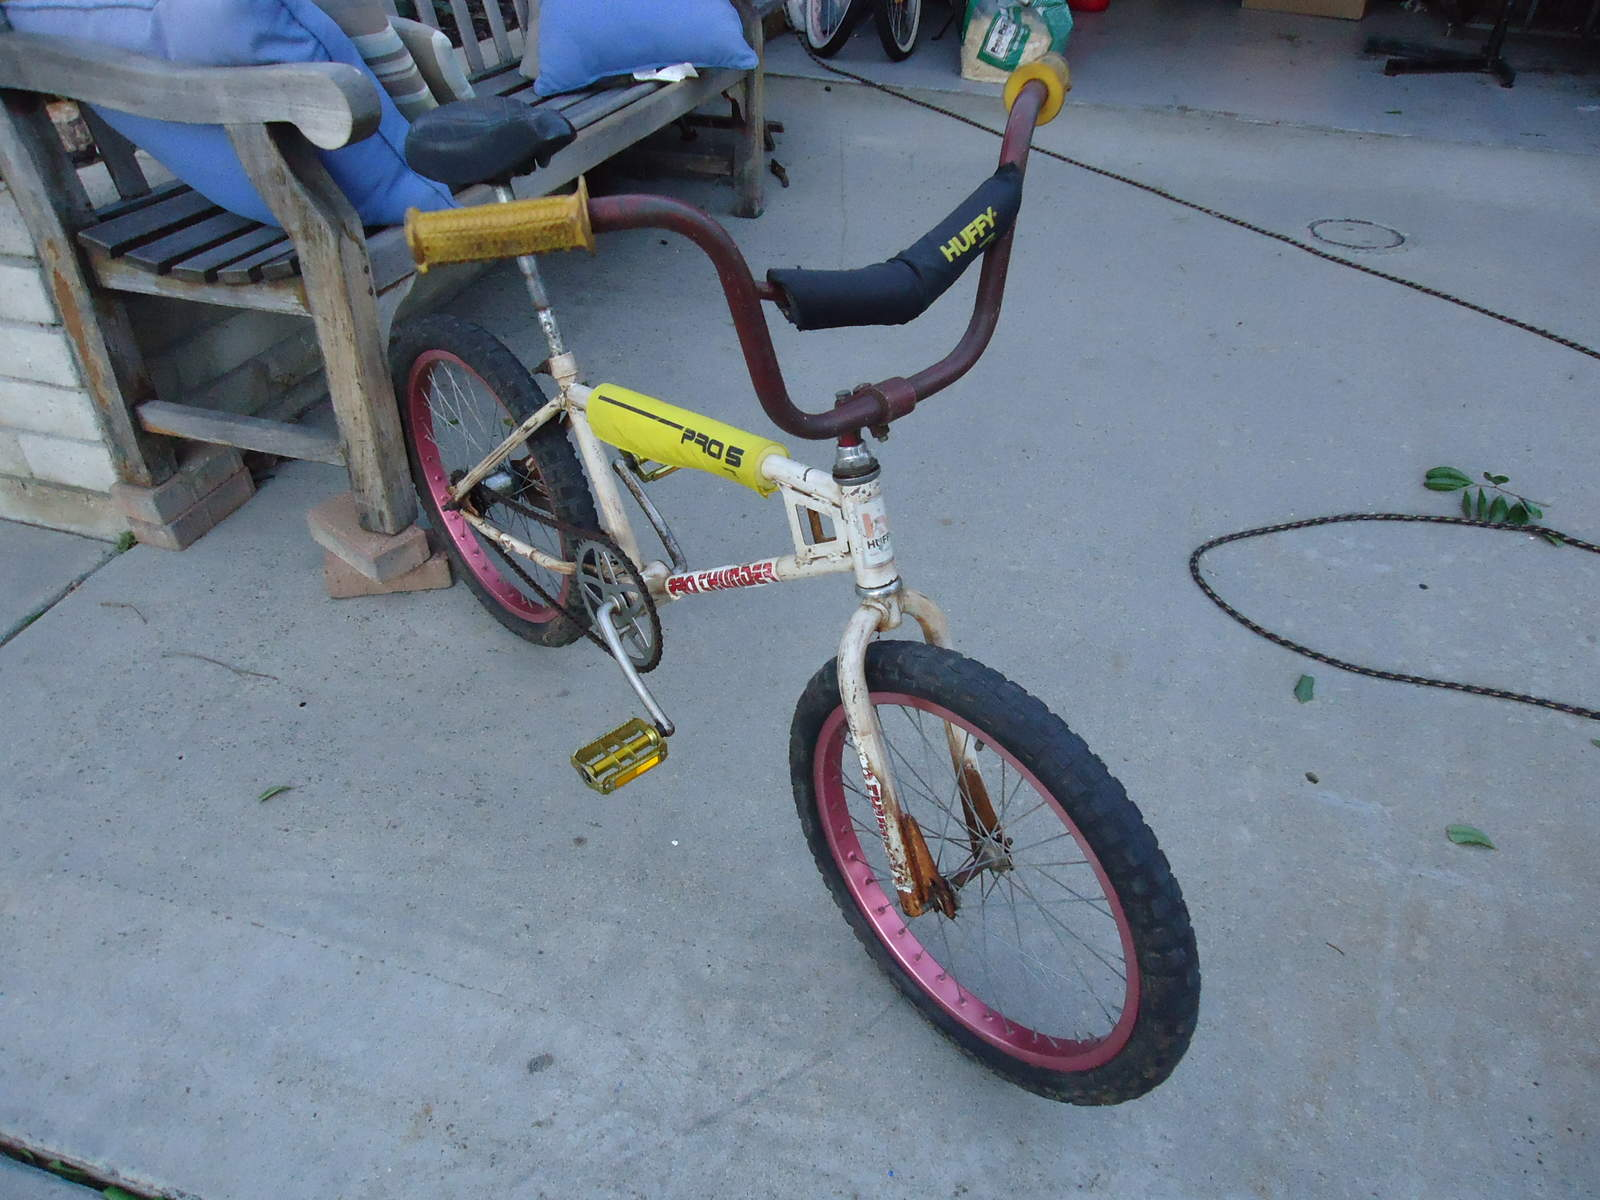 https://s3.amazonaws.com/uploads.bmxmuseum.com/user-images/37413/huffy-00257ea7b168d.jpg